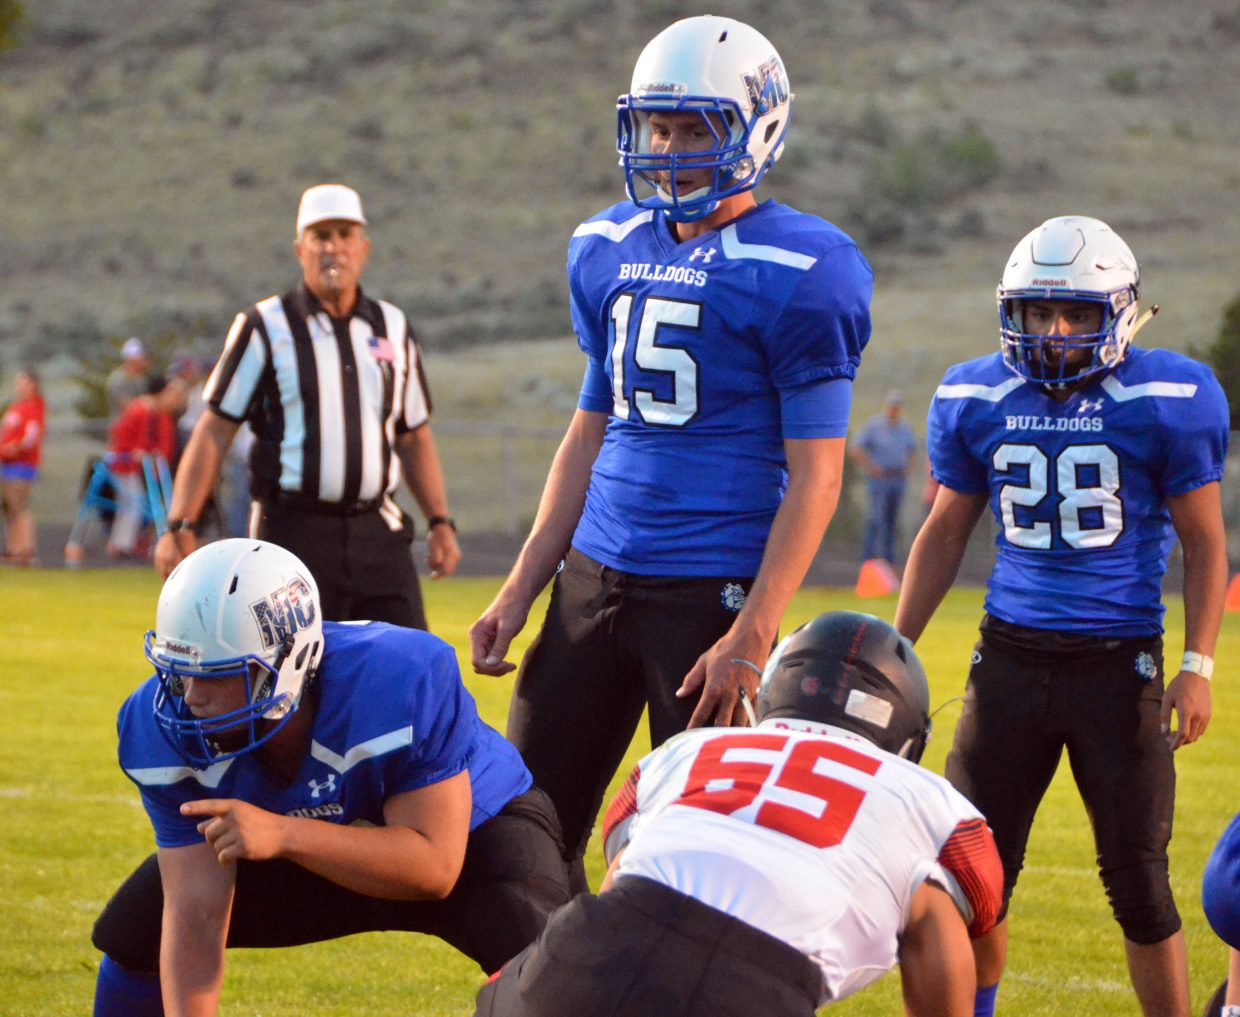 From left, Moffat County High School center Logan Knez, quarterback Colby Beaver and running back Kevin Hernandez are ready to score at the goal line against Steamboat Springs.